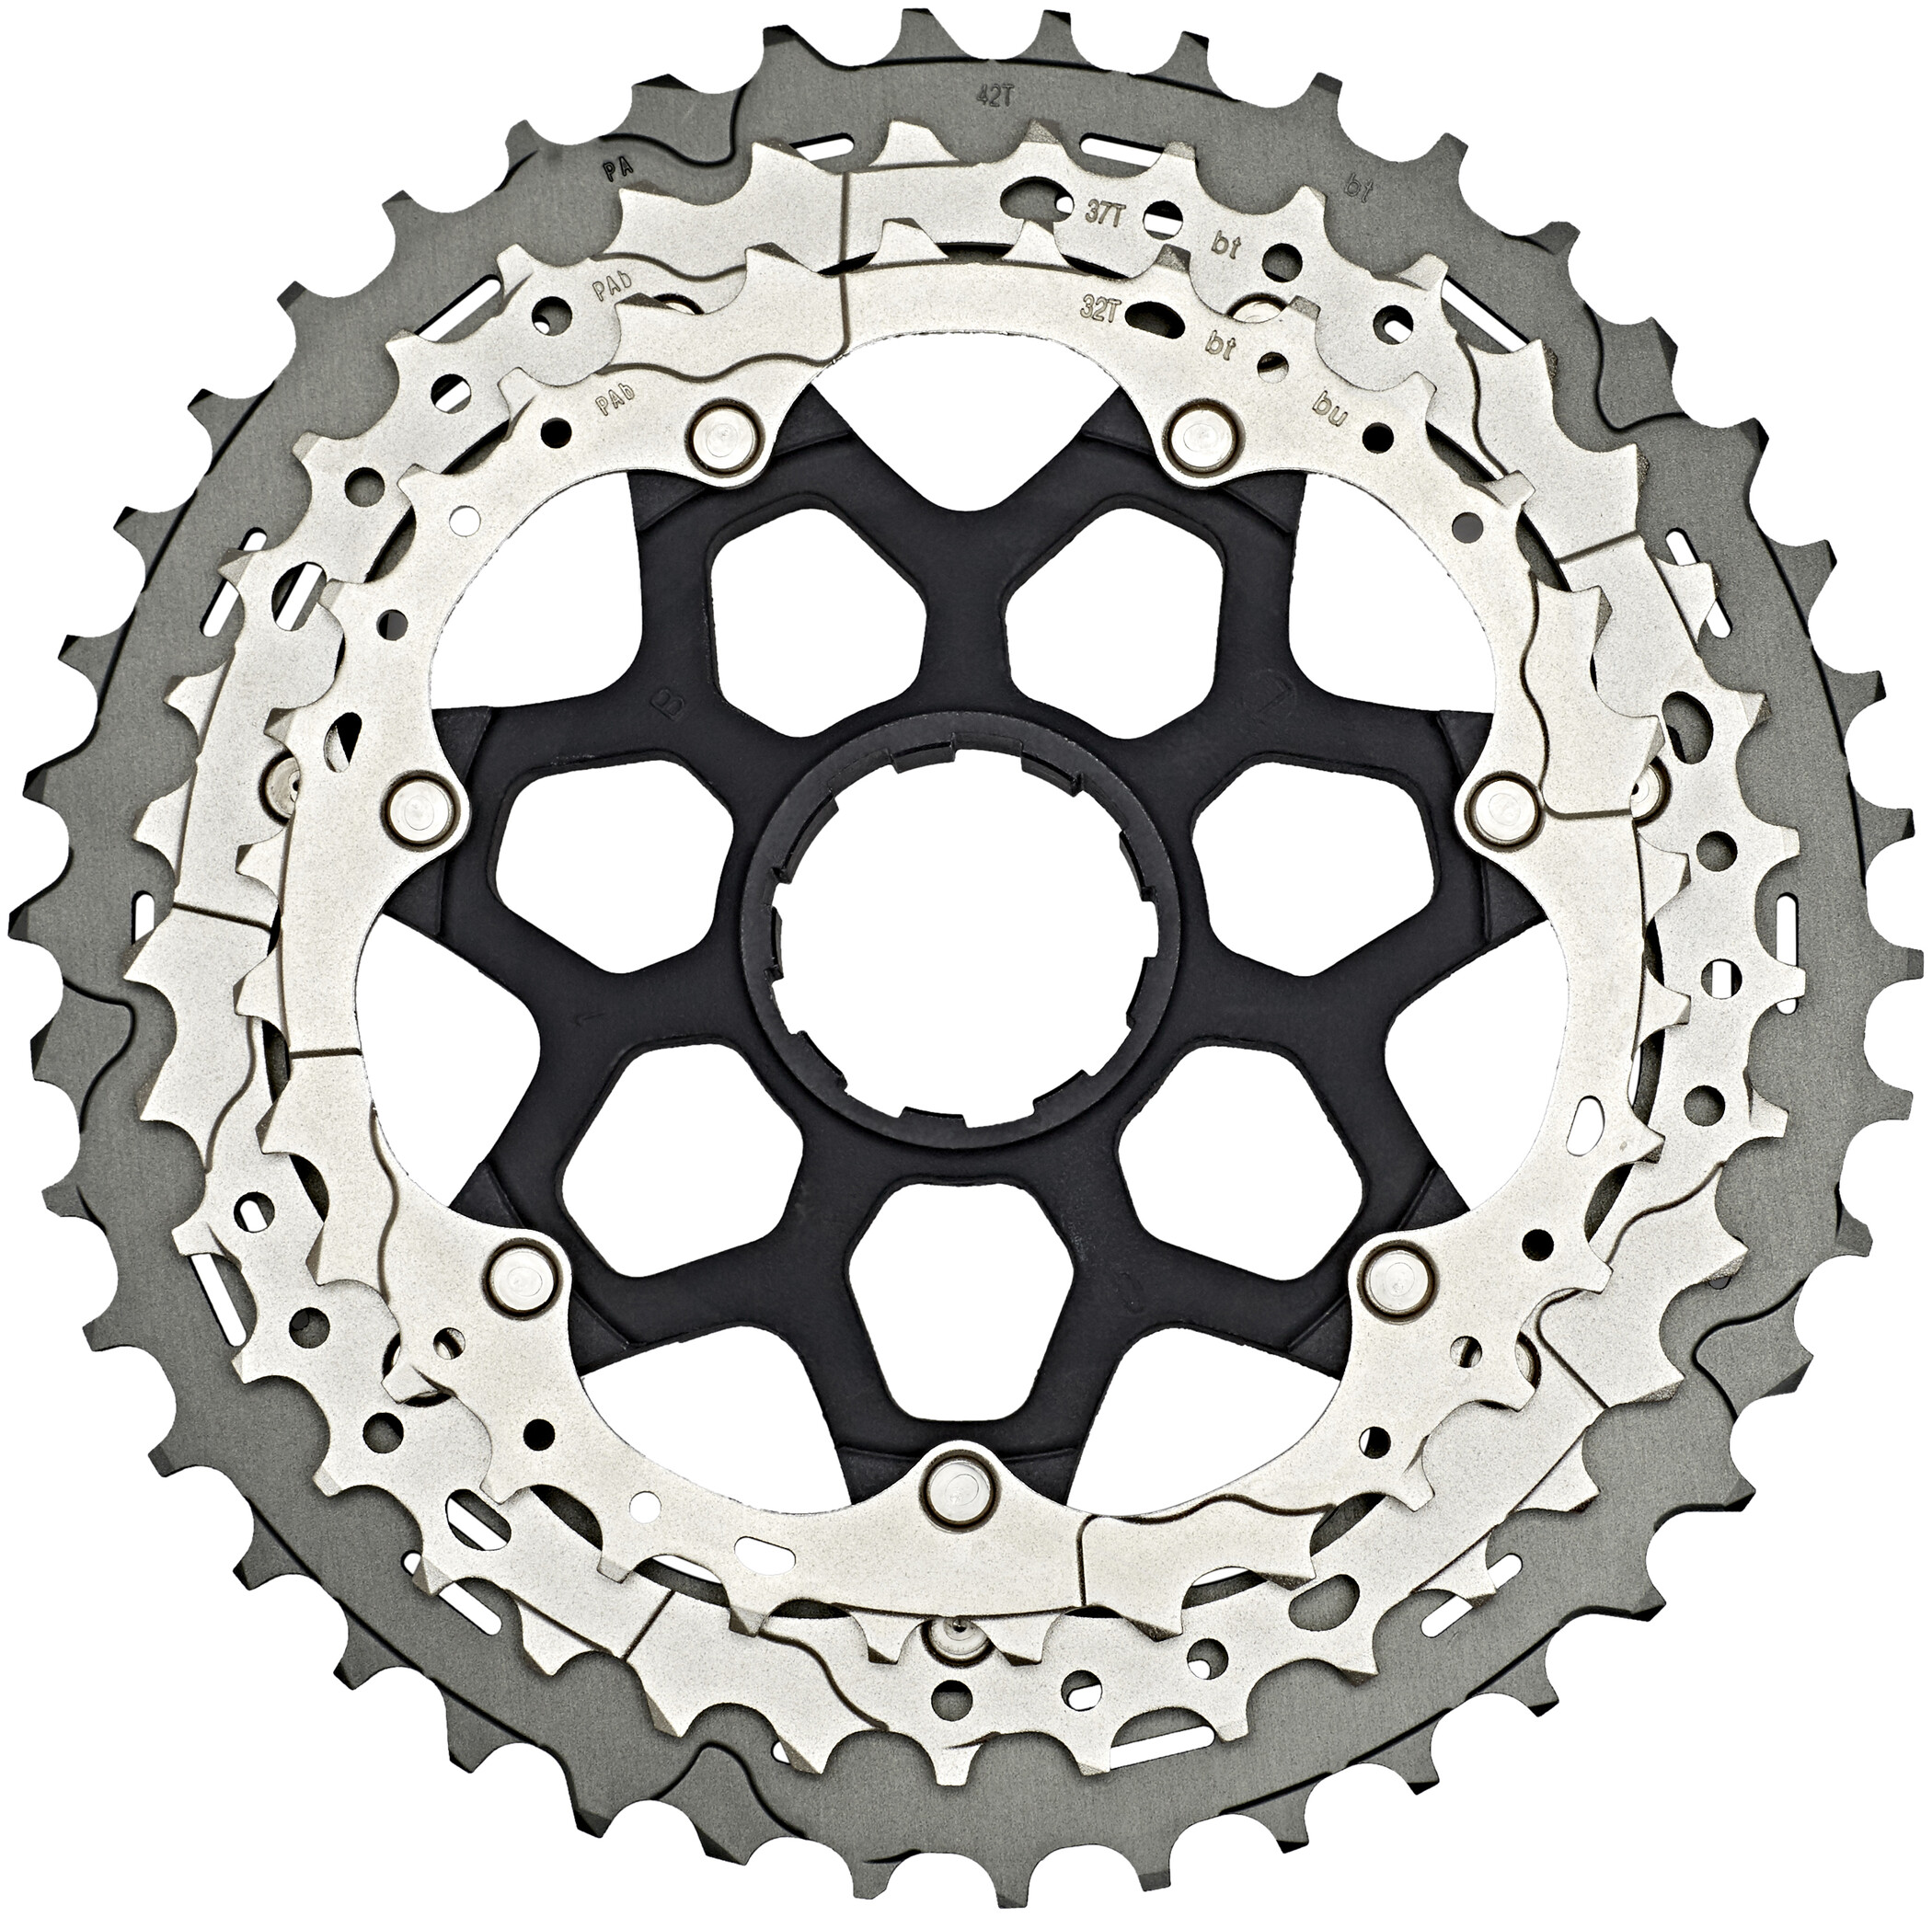 Shimano CS-M8000 Sprocket Unit for 11-42 teeth (2019) | chainrings_component